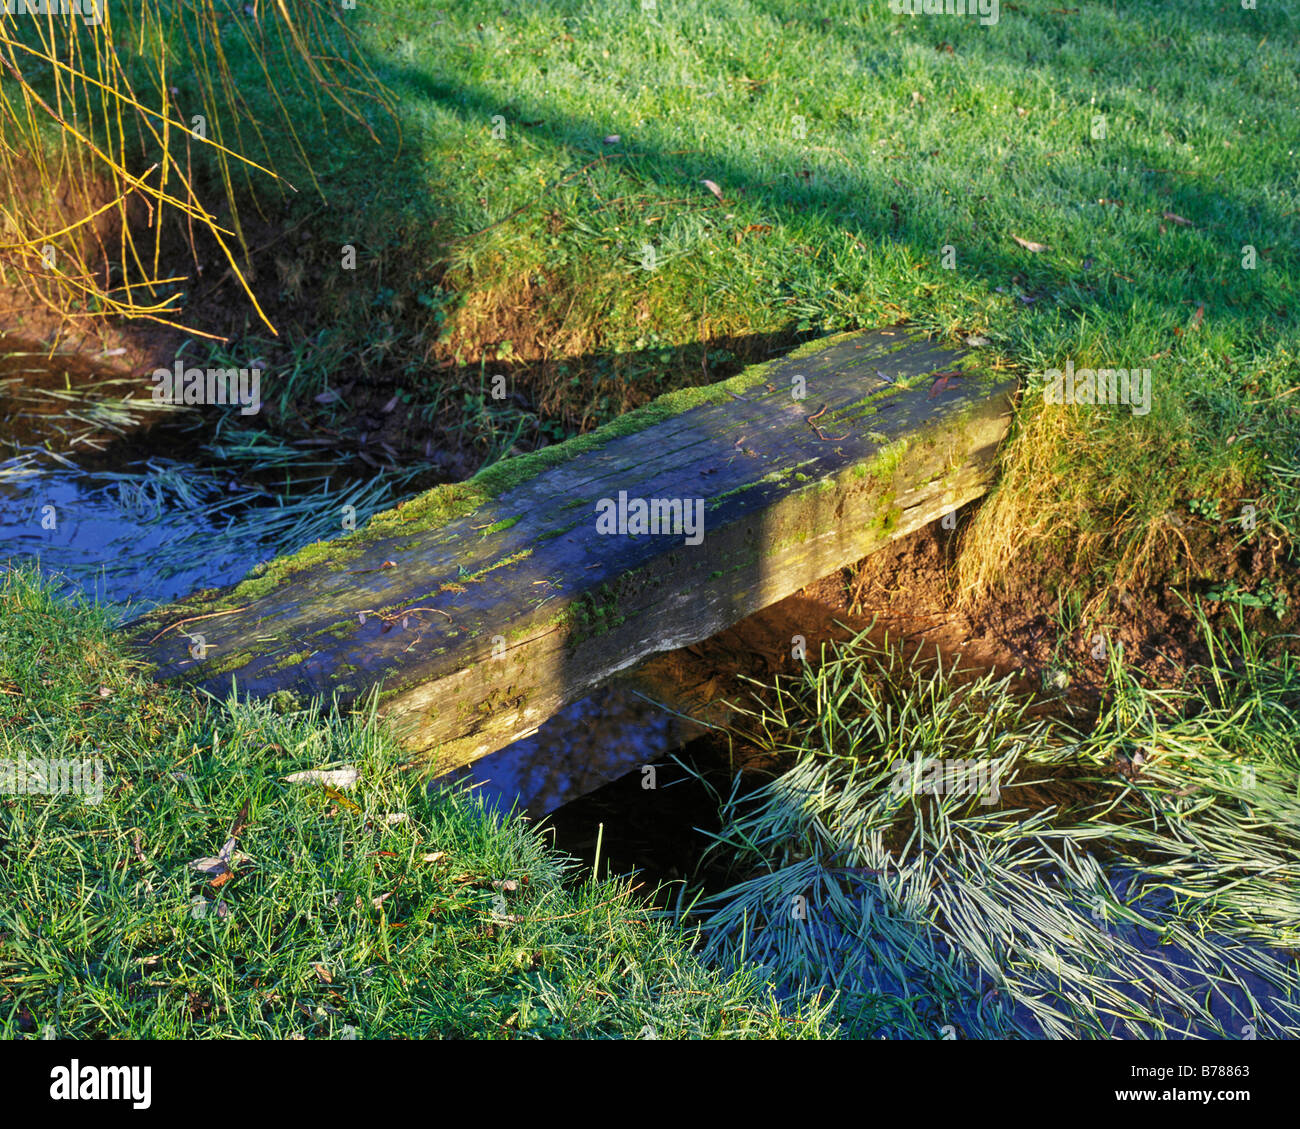 SINGLE RAILWAY SLEEPER FOOTBRIDGE ACROSS GARDEN STREAM - Stock Image